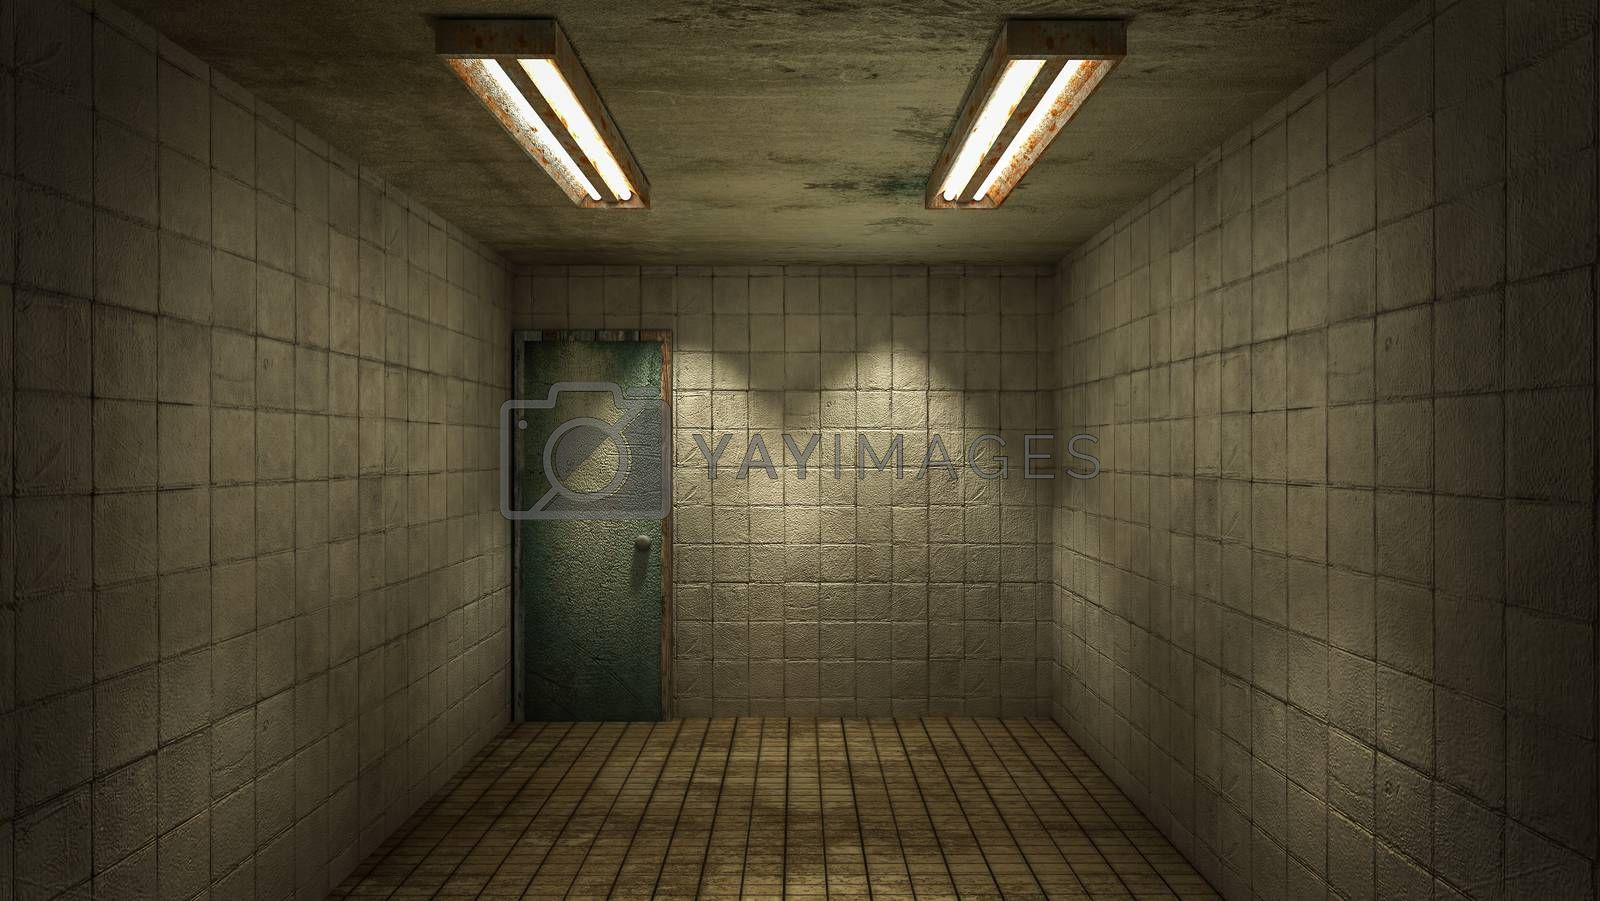 Royalty free image of The interior design of horror and creepy damage empty room., 3D rendering. by anotestocker